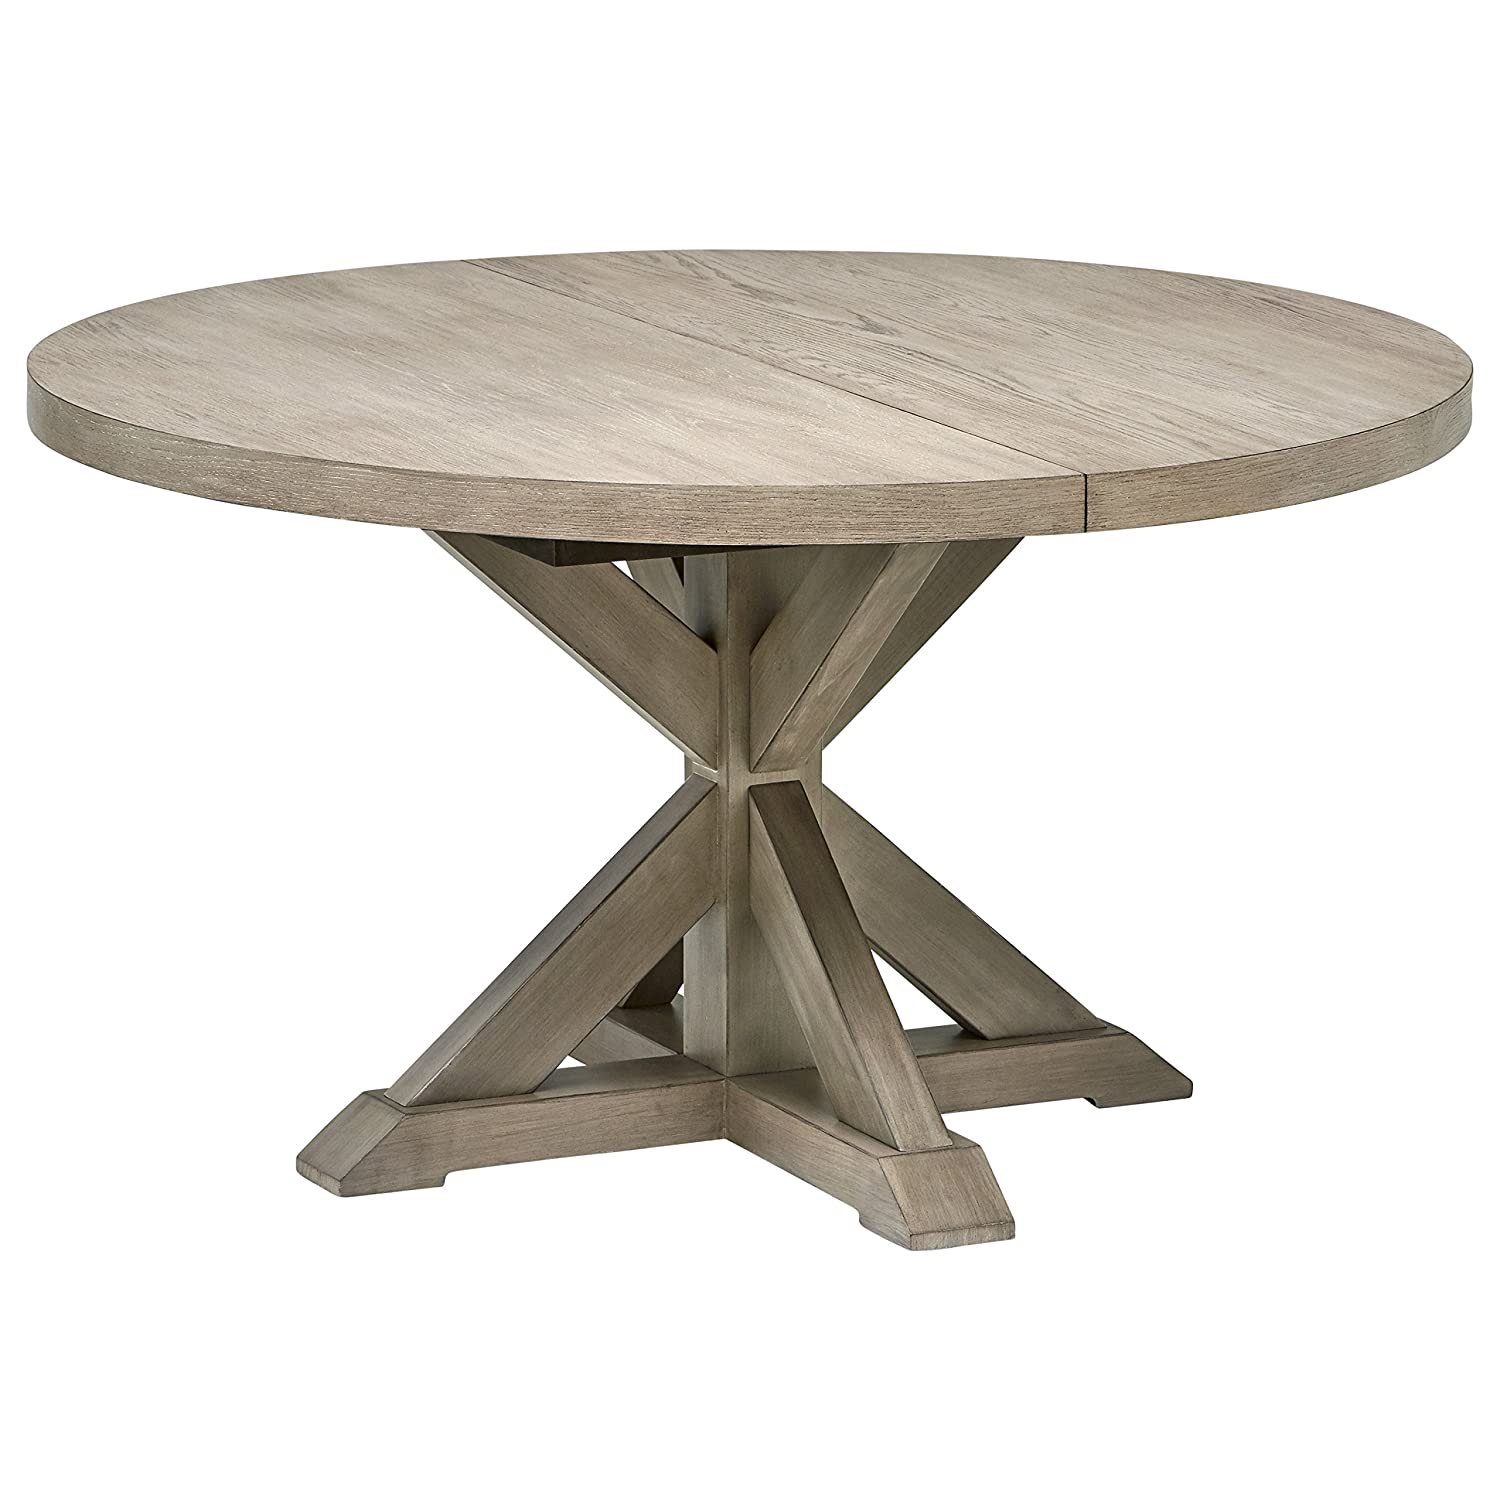 Groovy Stone Beam Creston Modern Expandable Wood Dining Kitchen Table Round 72W Oak Home Interior And Landscaping Ologienasavecom